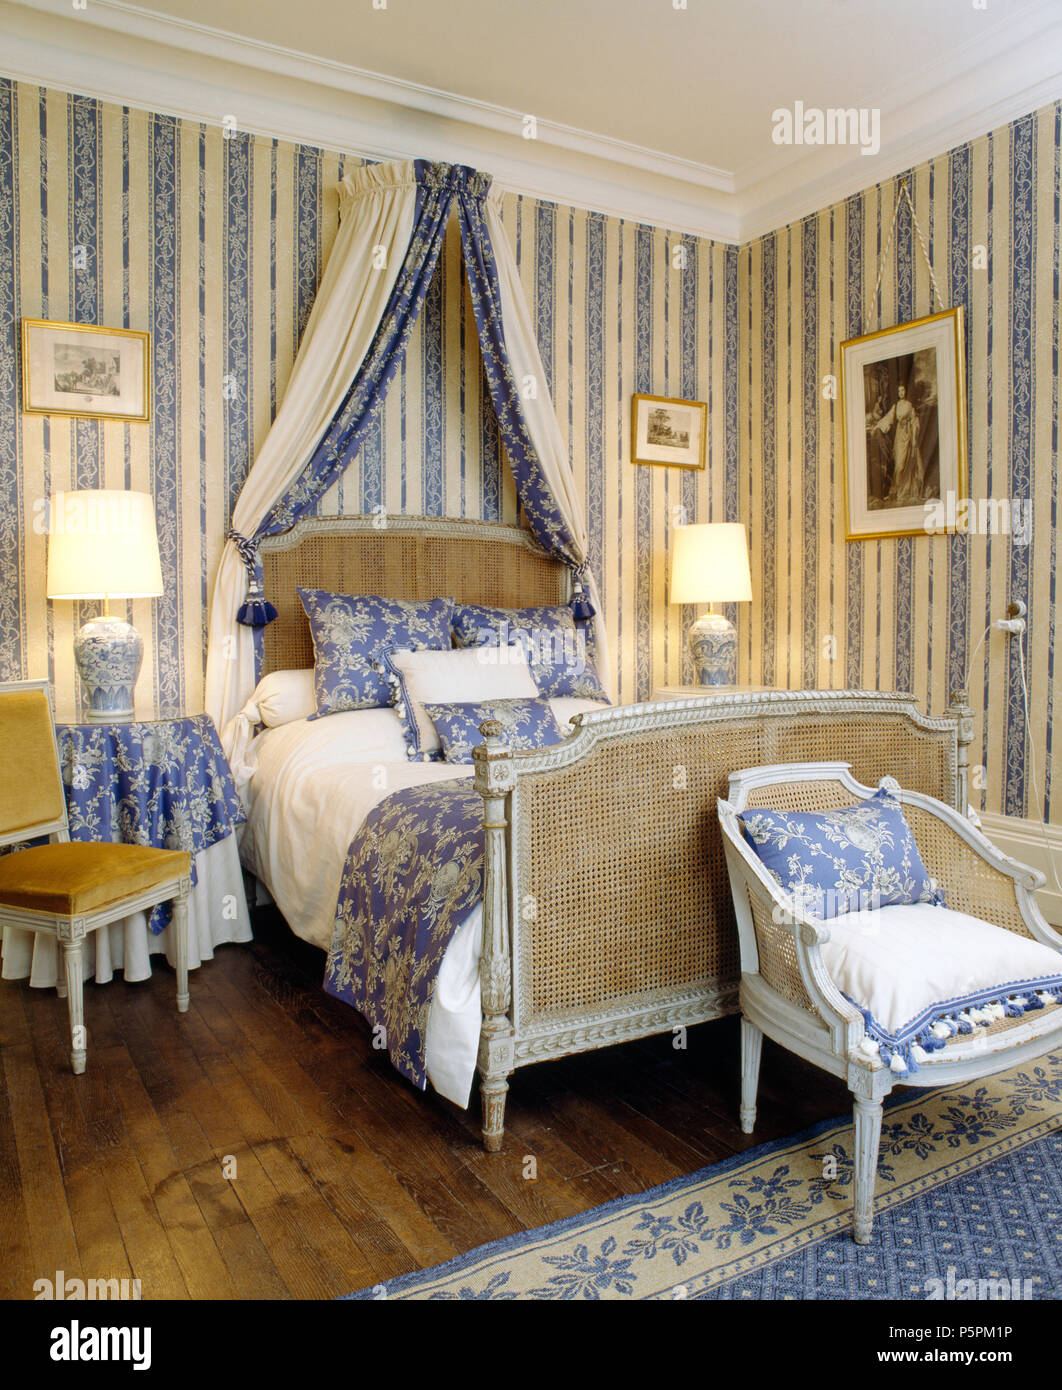 Antique Bergere bed with blue drapes in French country ...